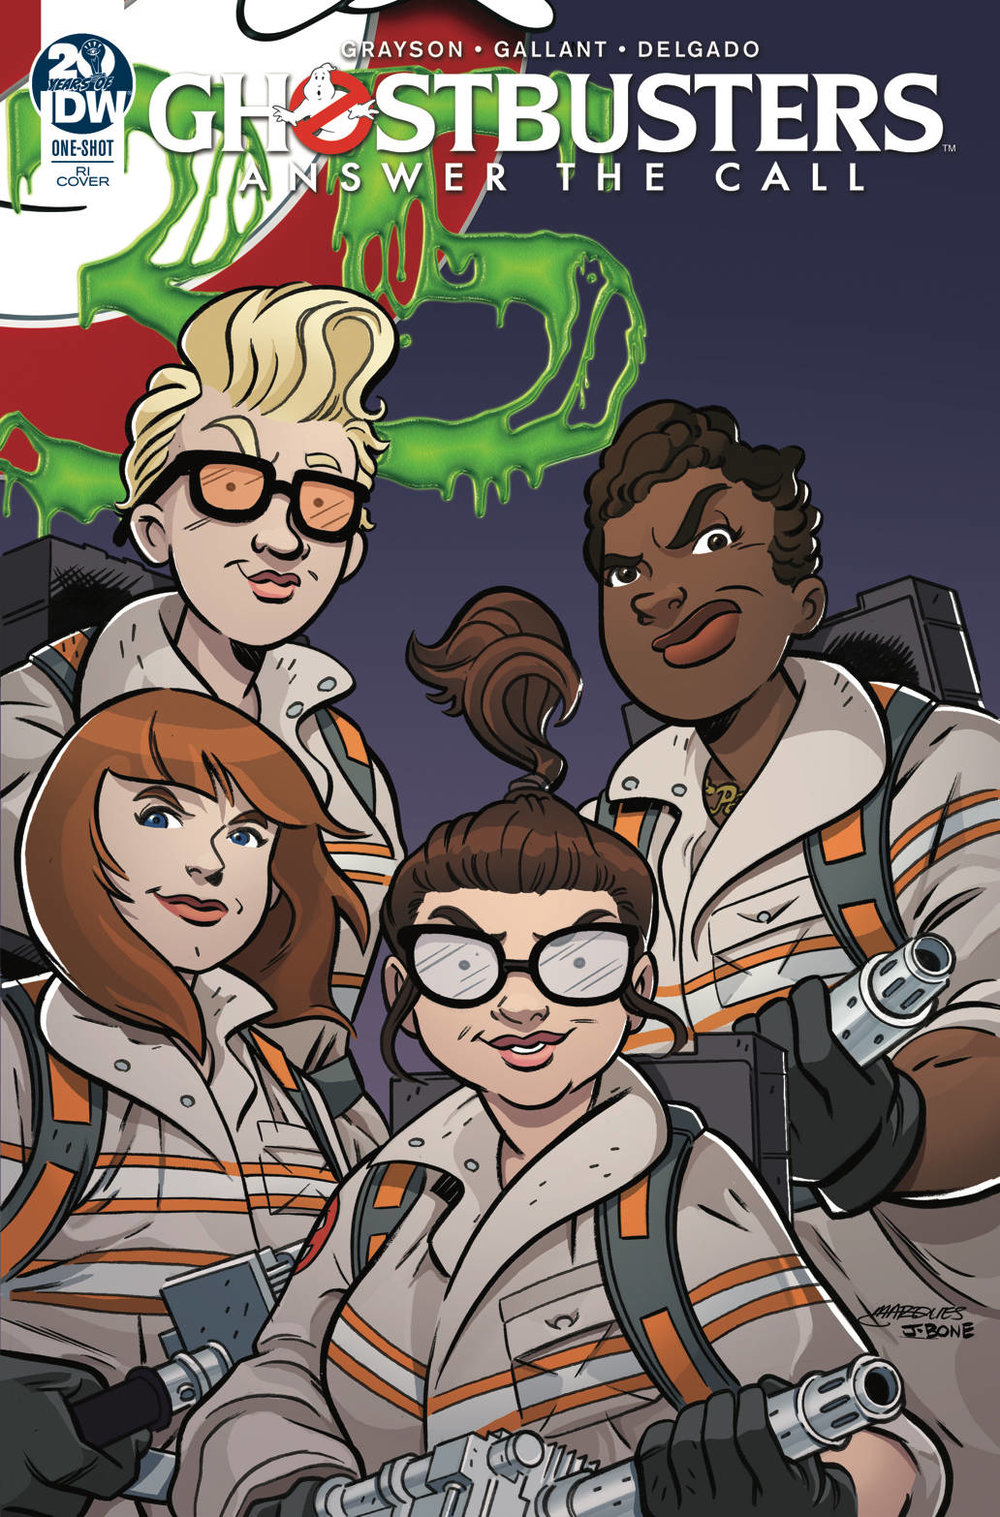 GHOSTBUSTERS 35TH ANNIV ANSWER CALL GHOSTBUSTERS 1 10 COPY INCV MARQUES.jpg